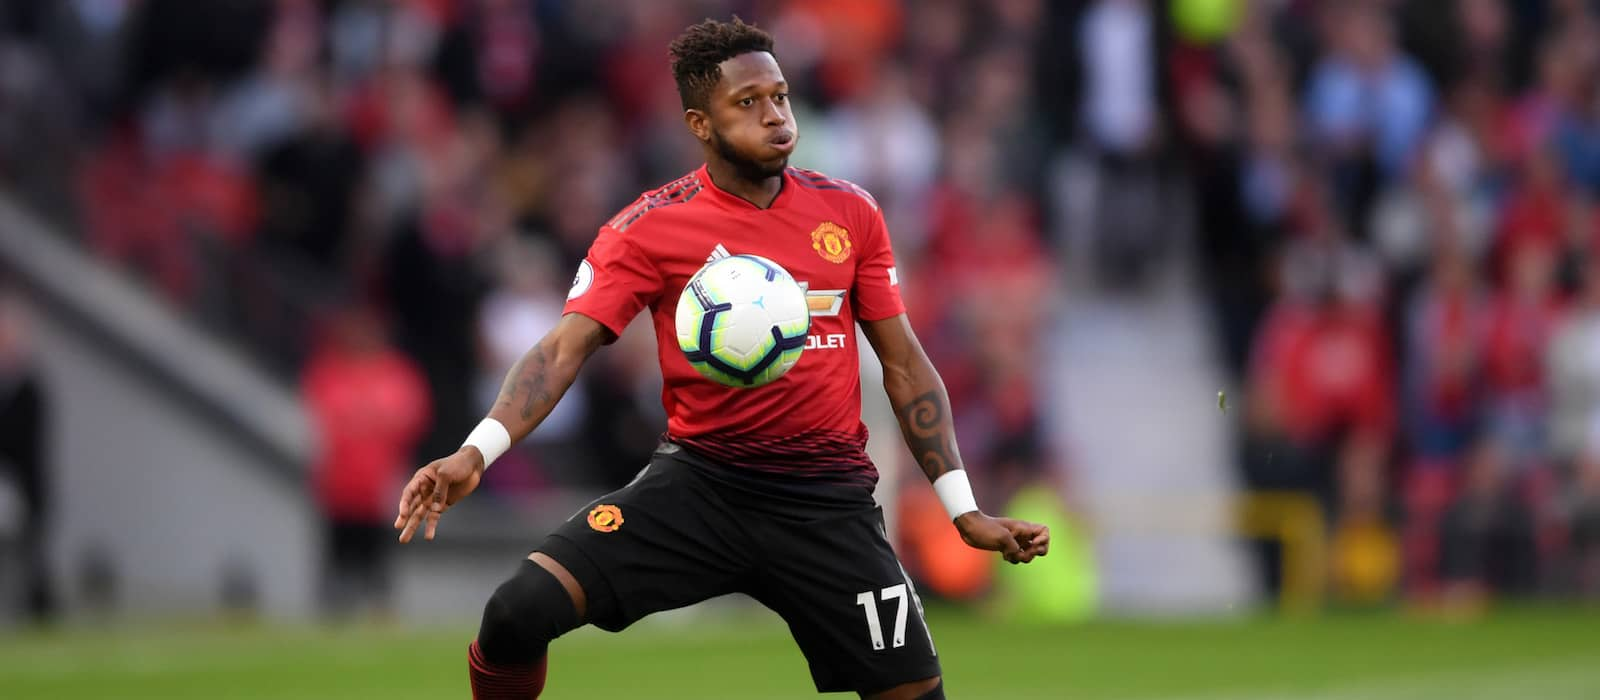 Jose Mourinho gives irritated response to question about Fred's progress at Manchester United